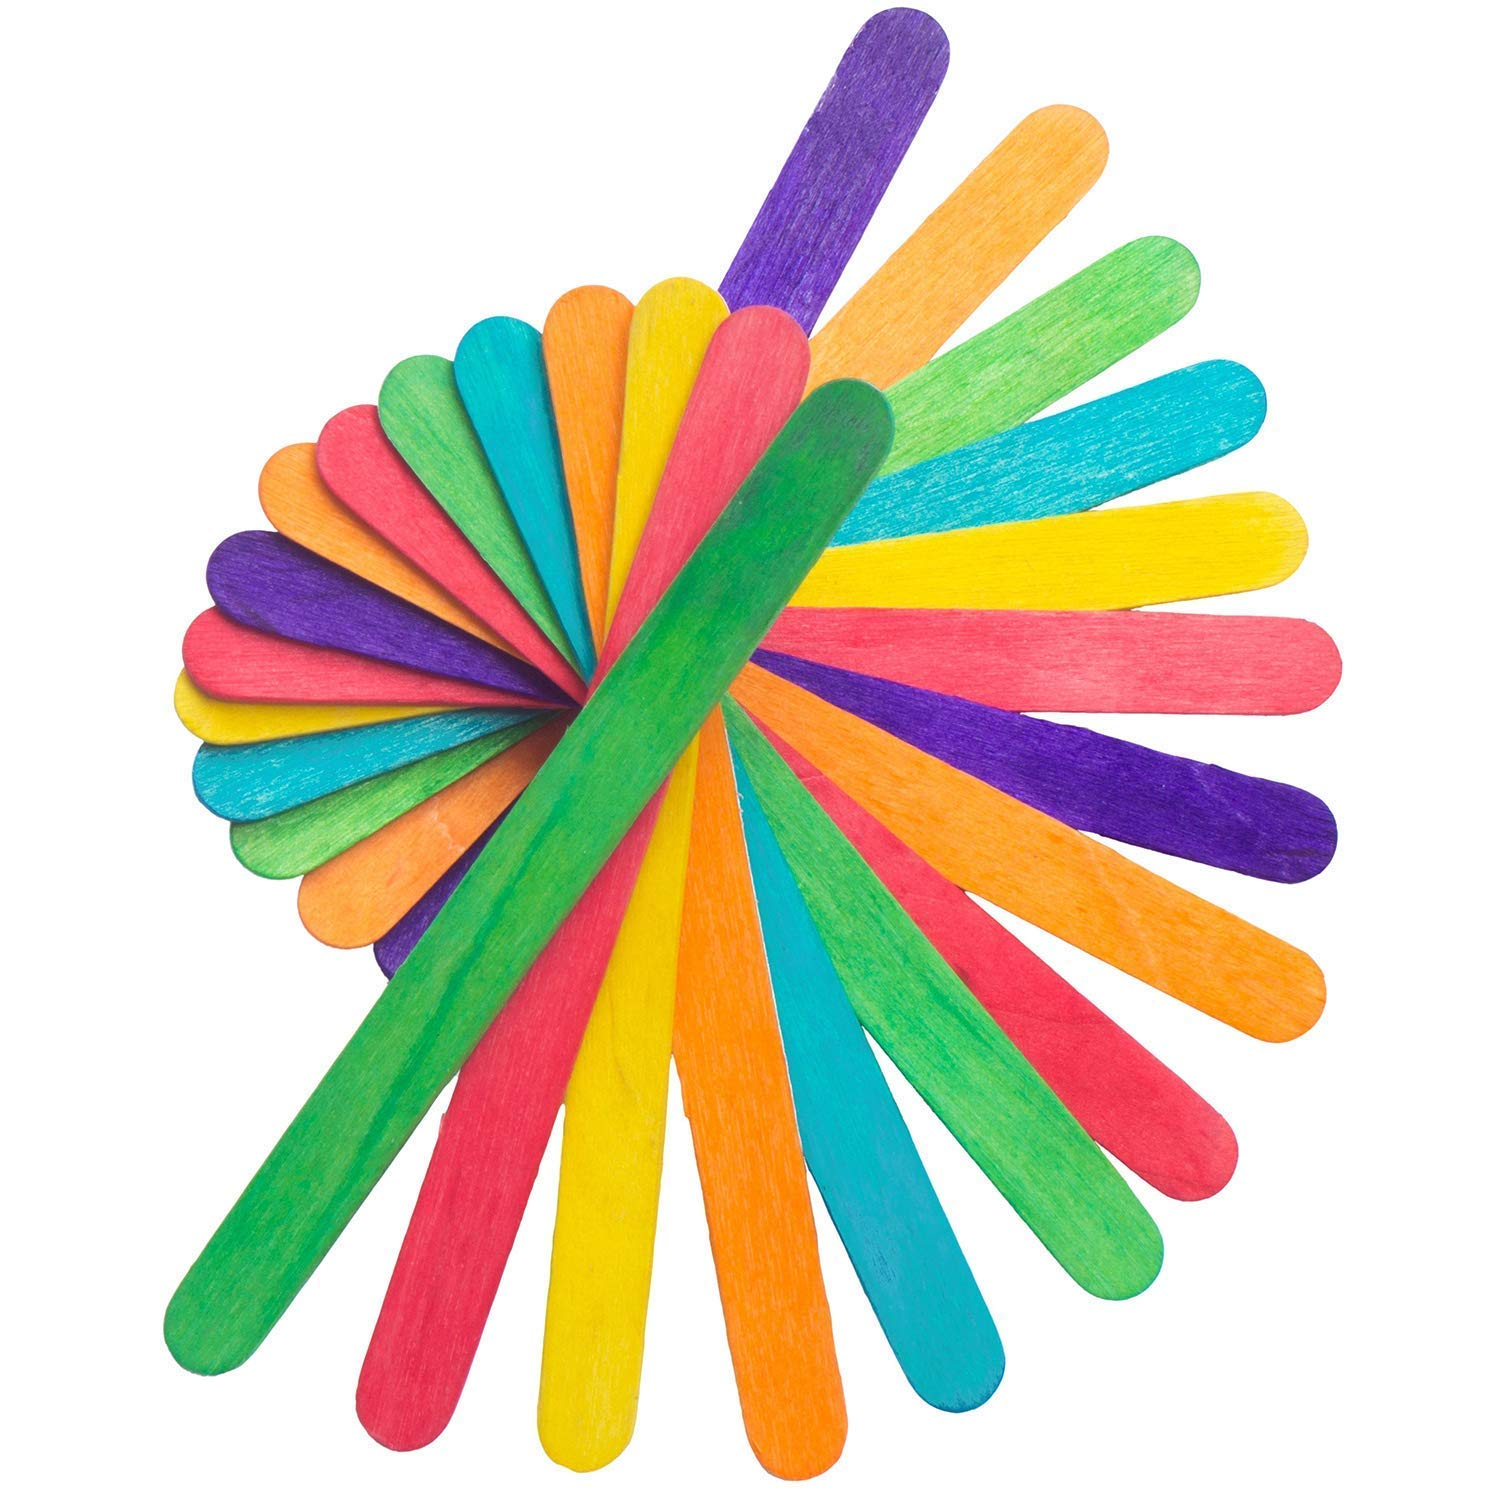 Rewiss Jumbo Colored Craft Sticks Wood Craft Sticks Great for DIY Crafts Creative Design and Children Art Group Activities Projects 500 Pieces 6 Inch